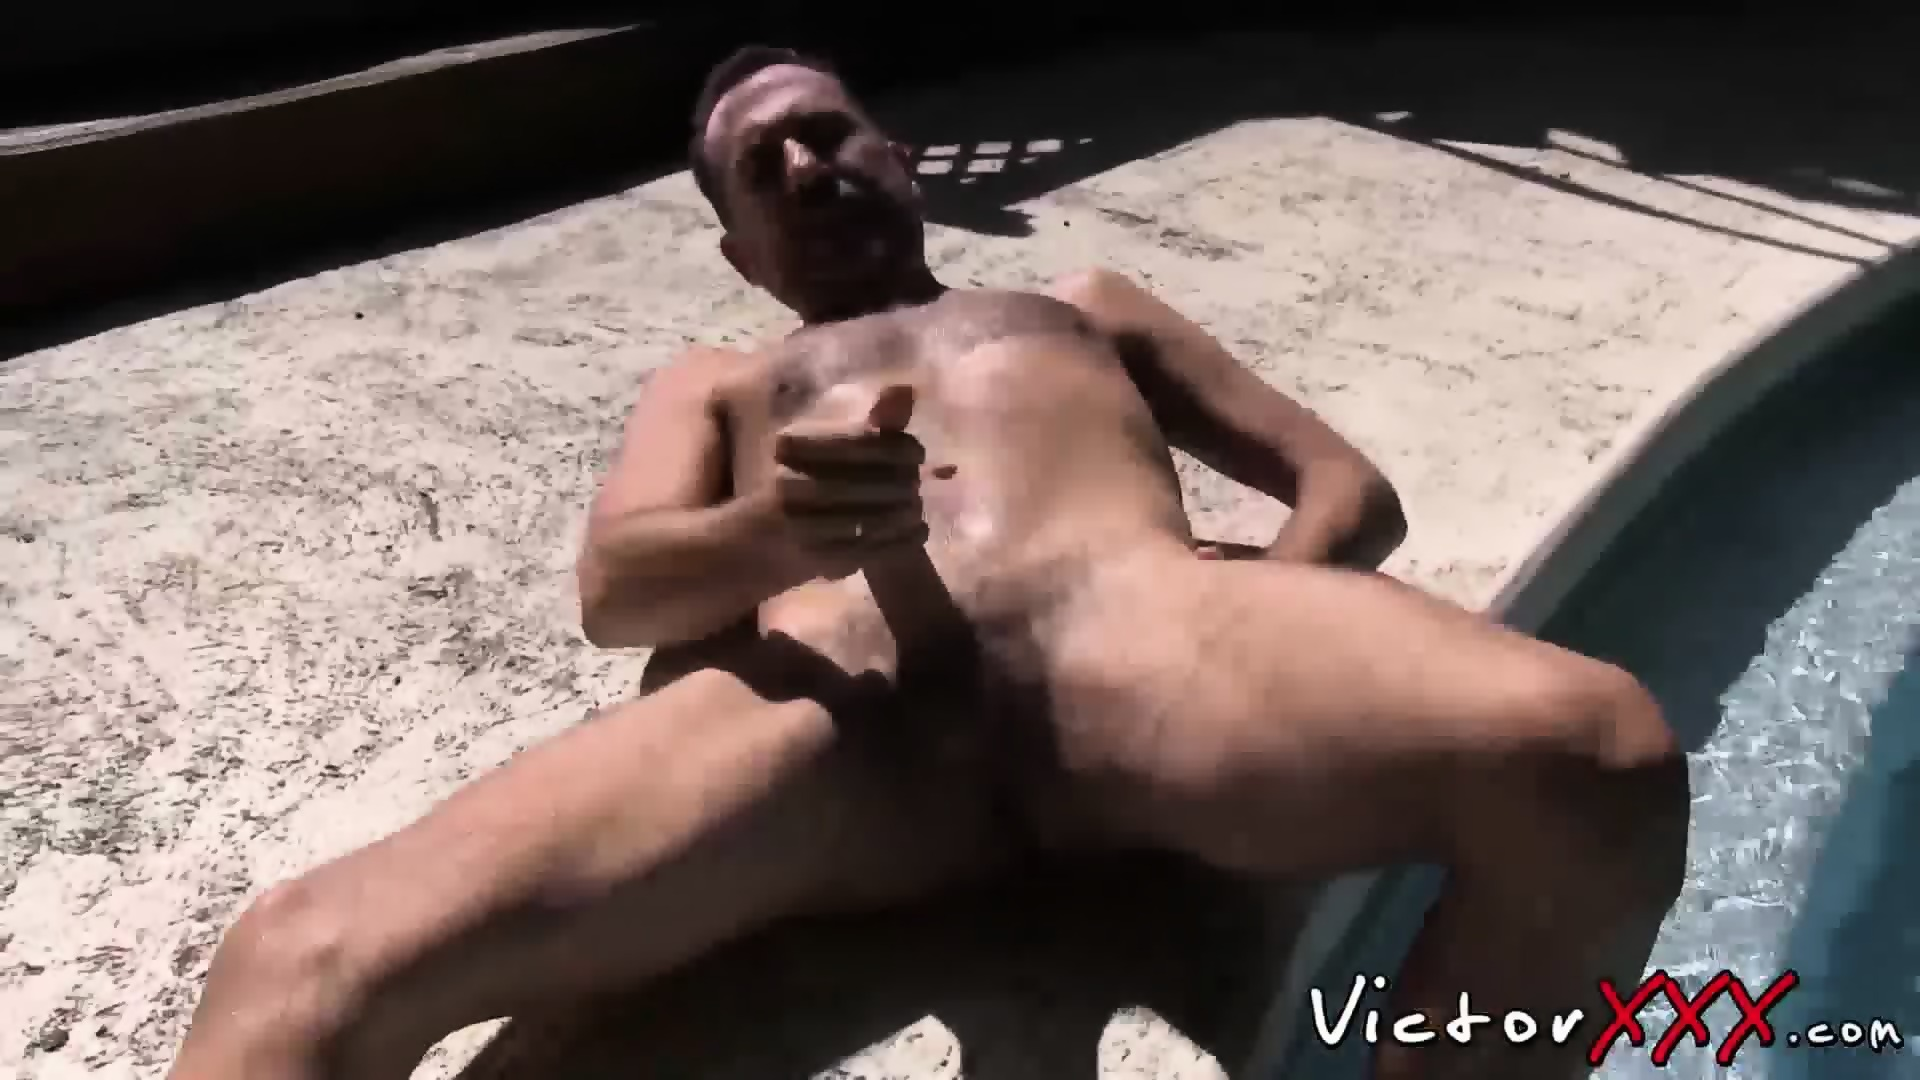 Male Nipple Play Masturbation